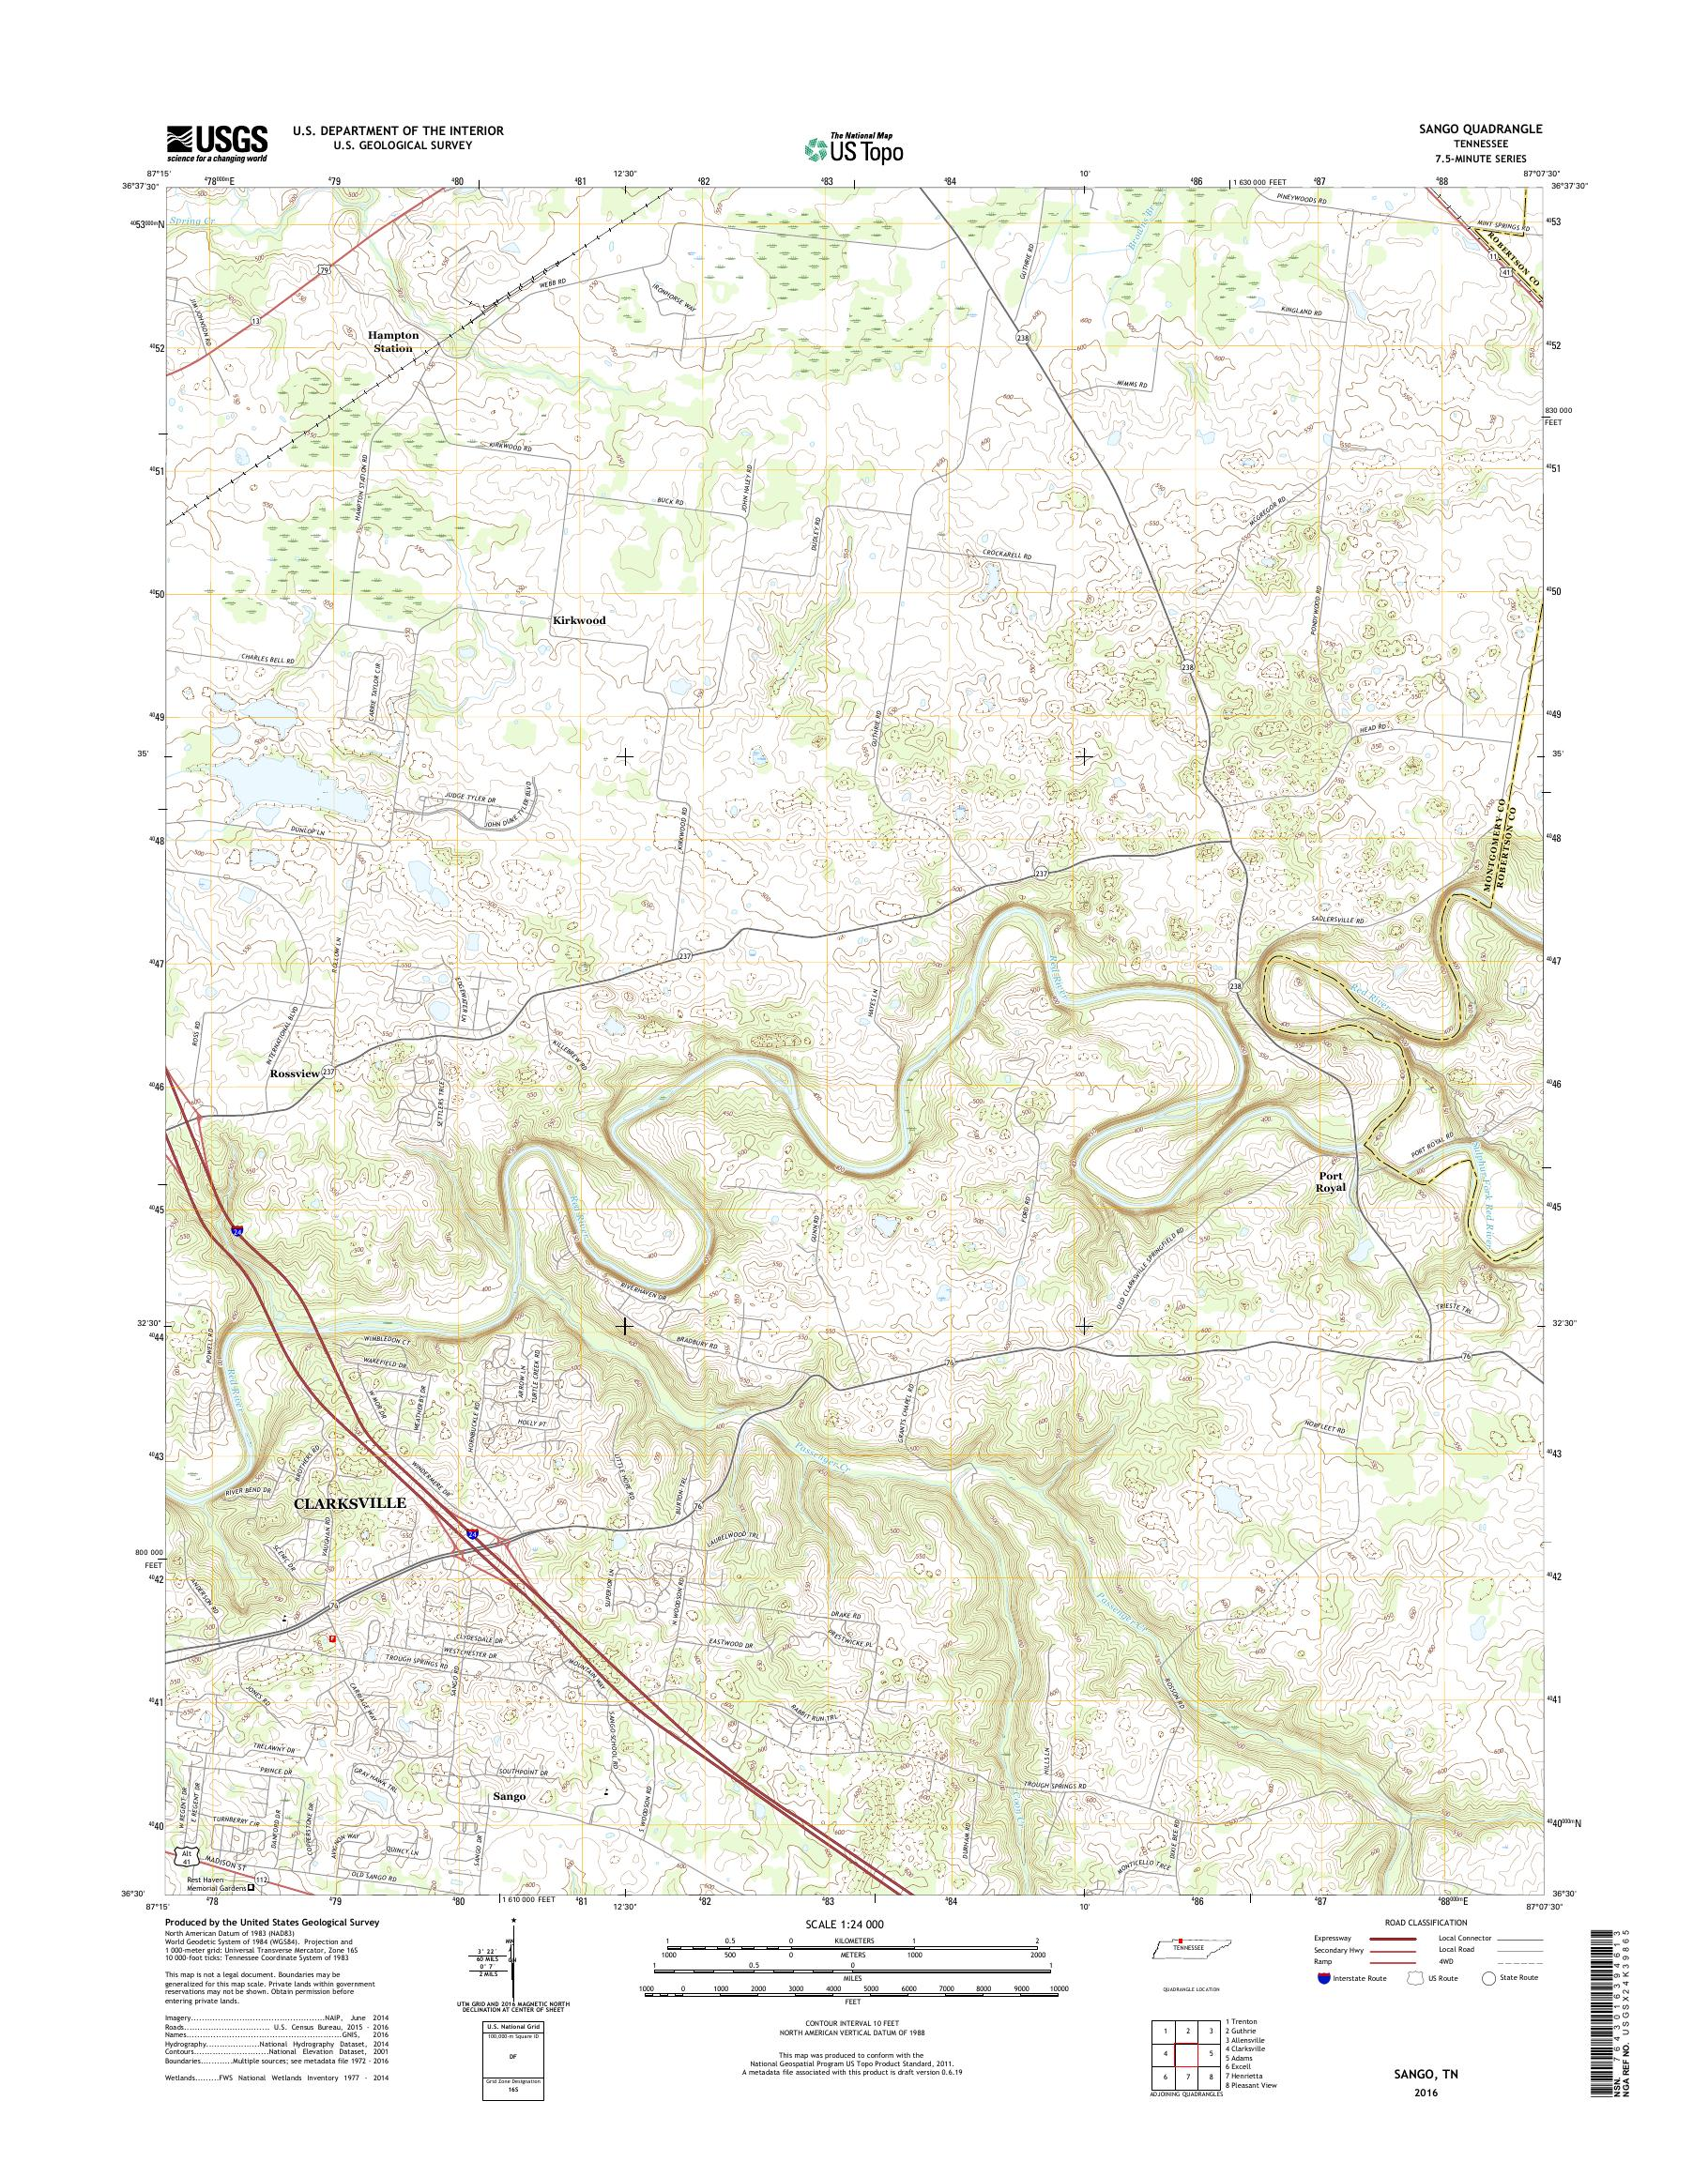 MyTopo Sango, Tennessee USGS Quad Topo Map on